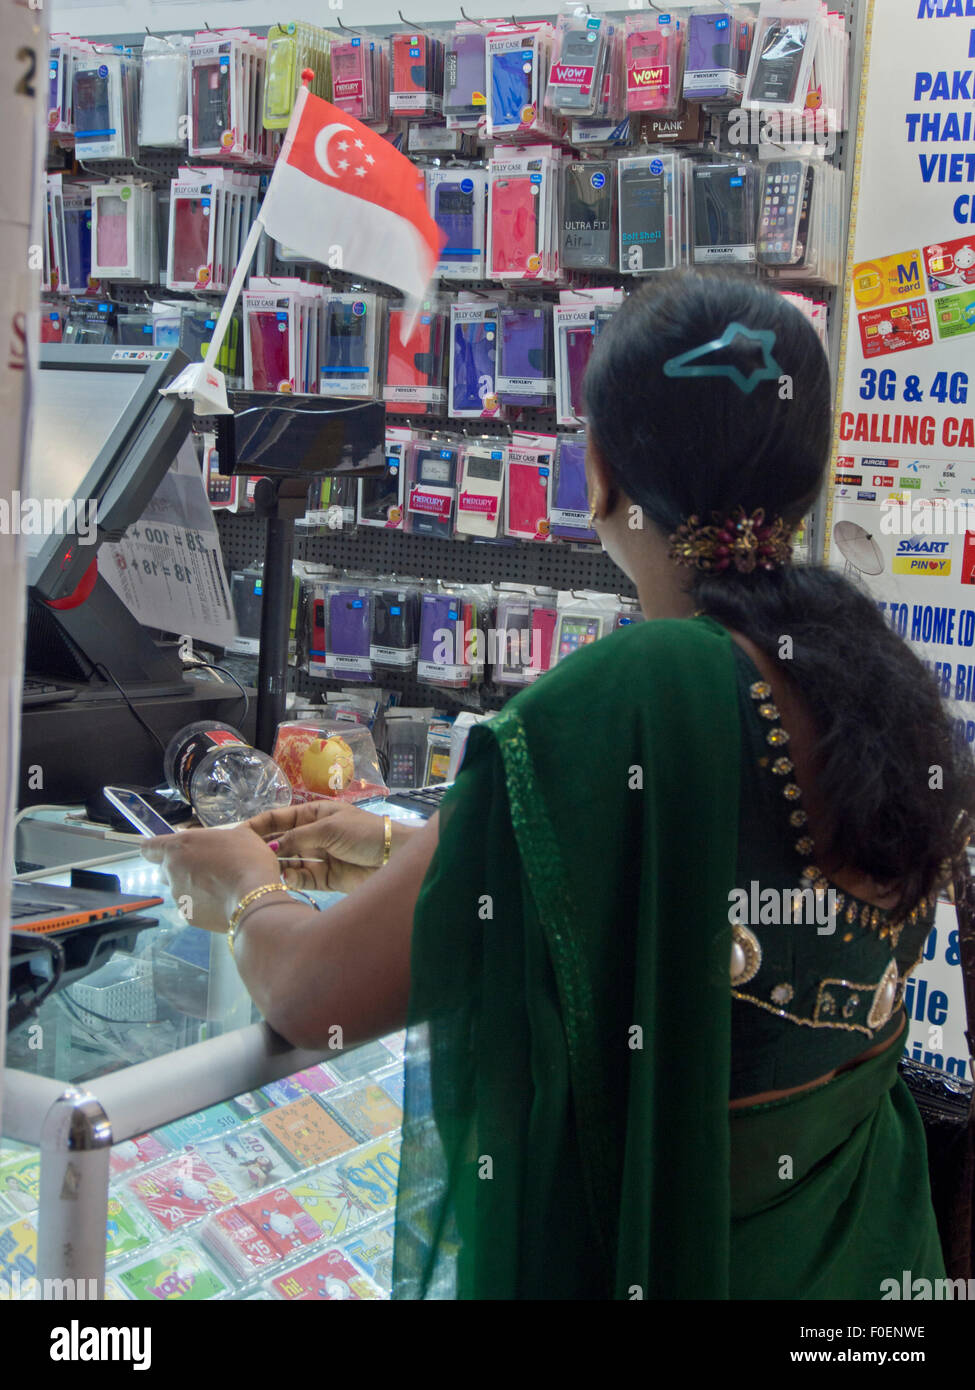 Indian woman at a mobile phone shop in the Tekka Centre